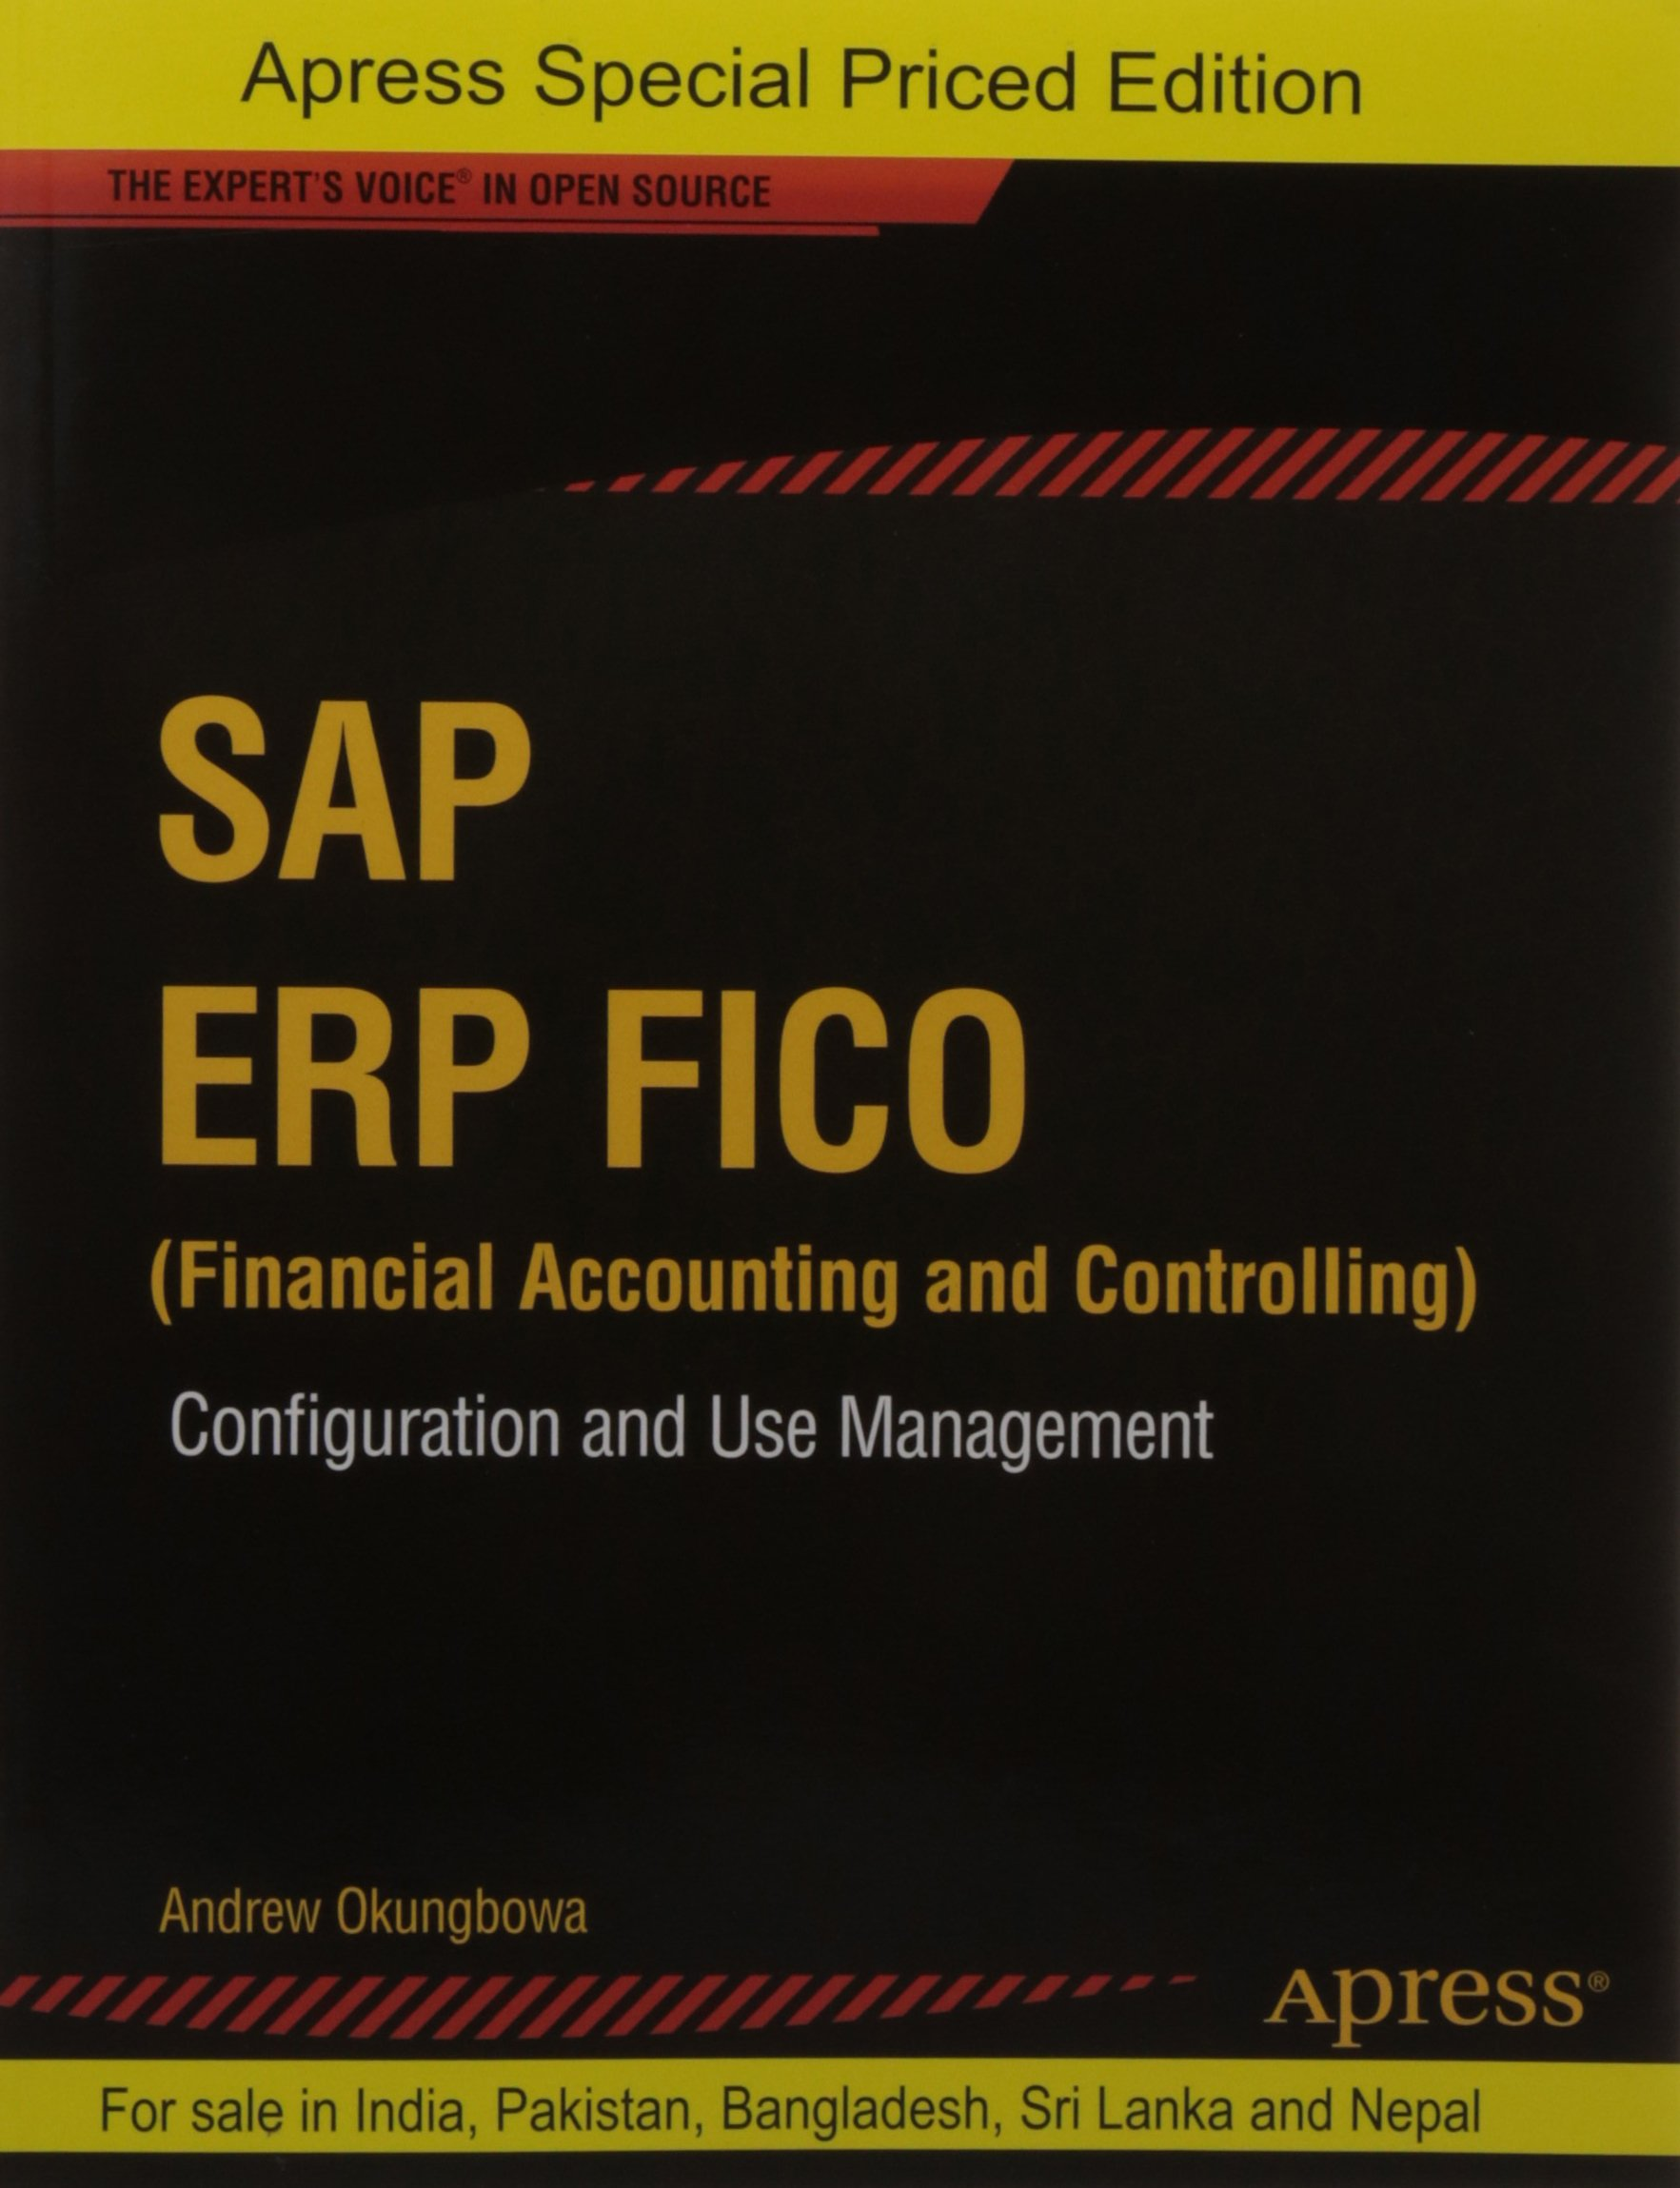 Sap ERP Fico (Financial Accounting and Controlling)